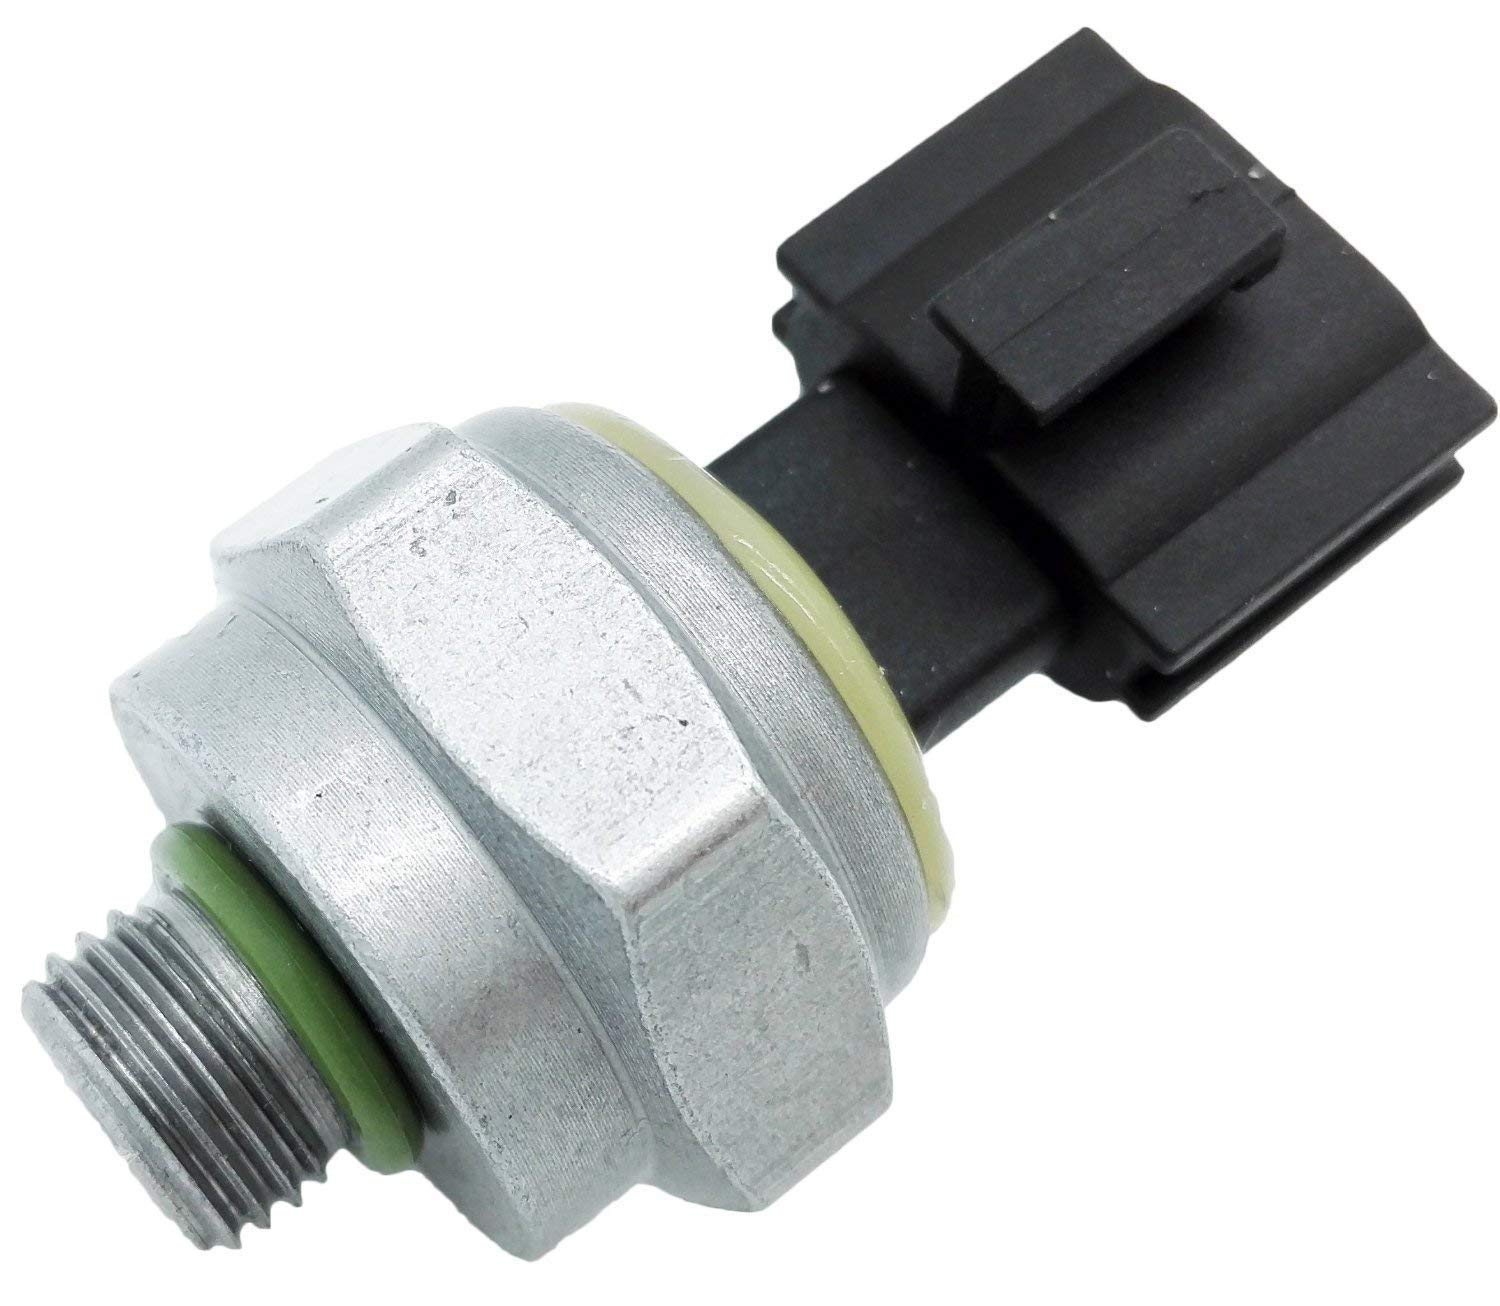 Power Steering Pressure Switch for Nissan Altima Murano Maxima Frontier Infiniti FX50 Q45 49763-6N20A Yupin Auto Parts Co.; Ltd. 49763-6N200